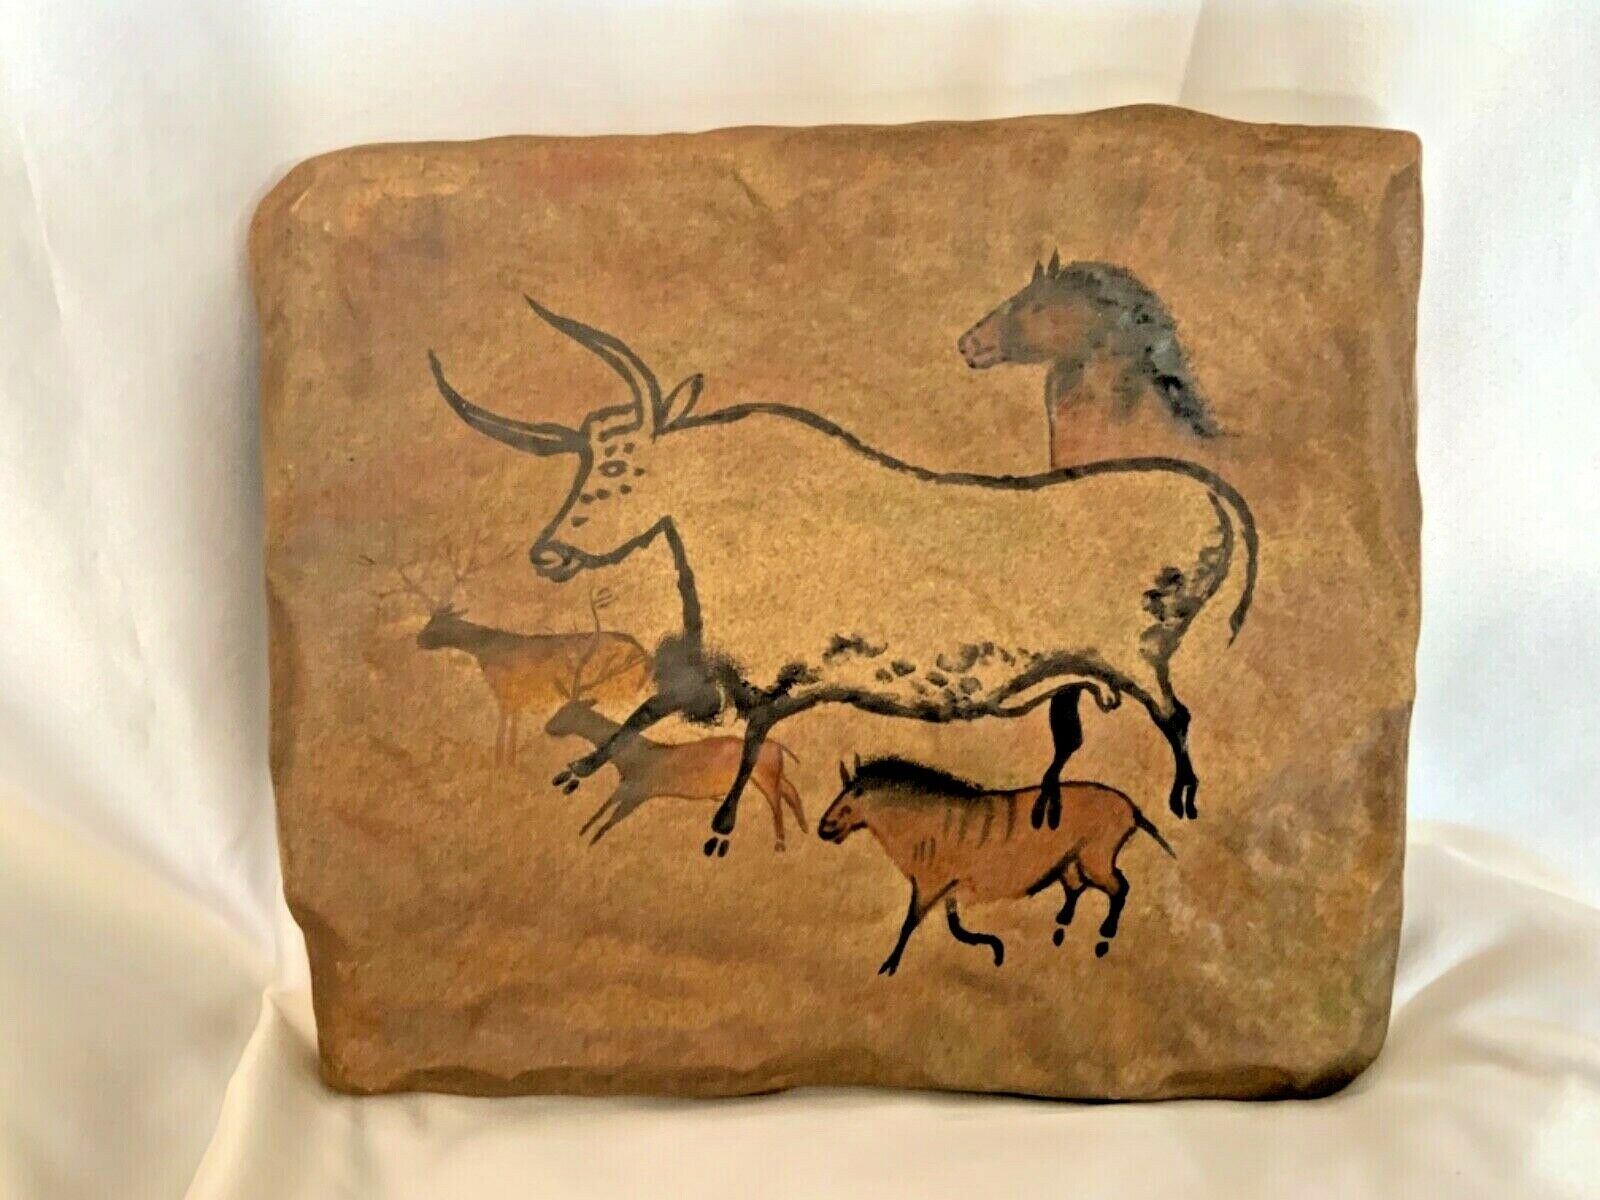 Bradford Exchange The Dawn of Man Running Bison and Deer Stone Tile Wall Plaque - $35.00